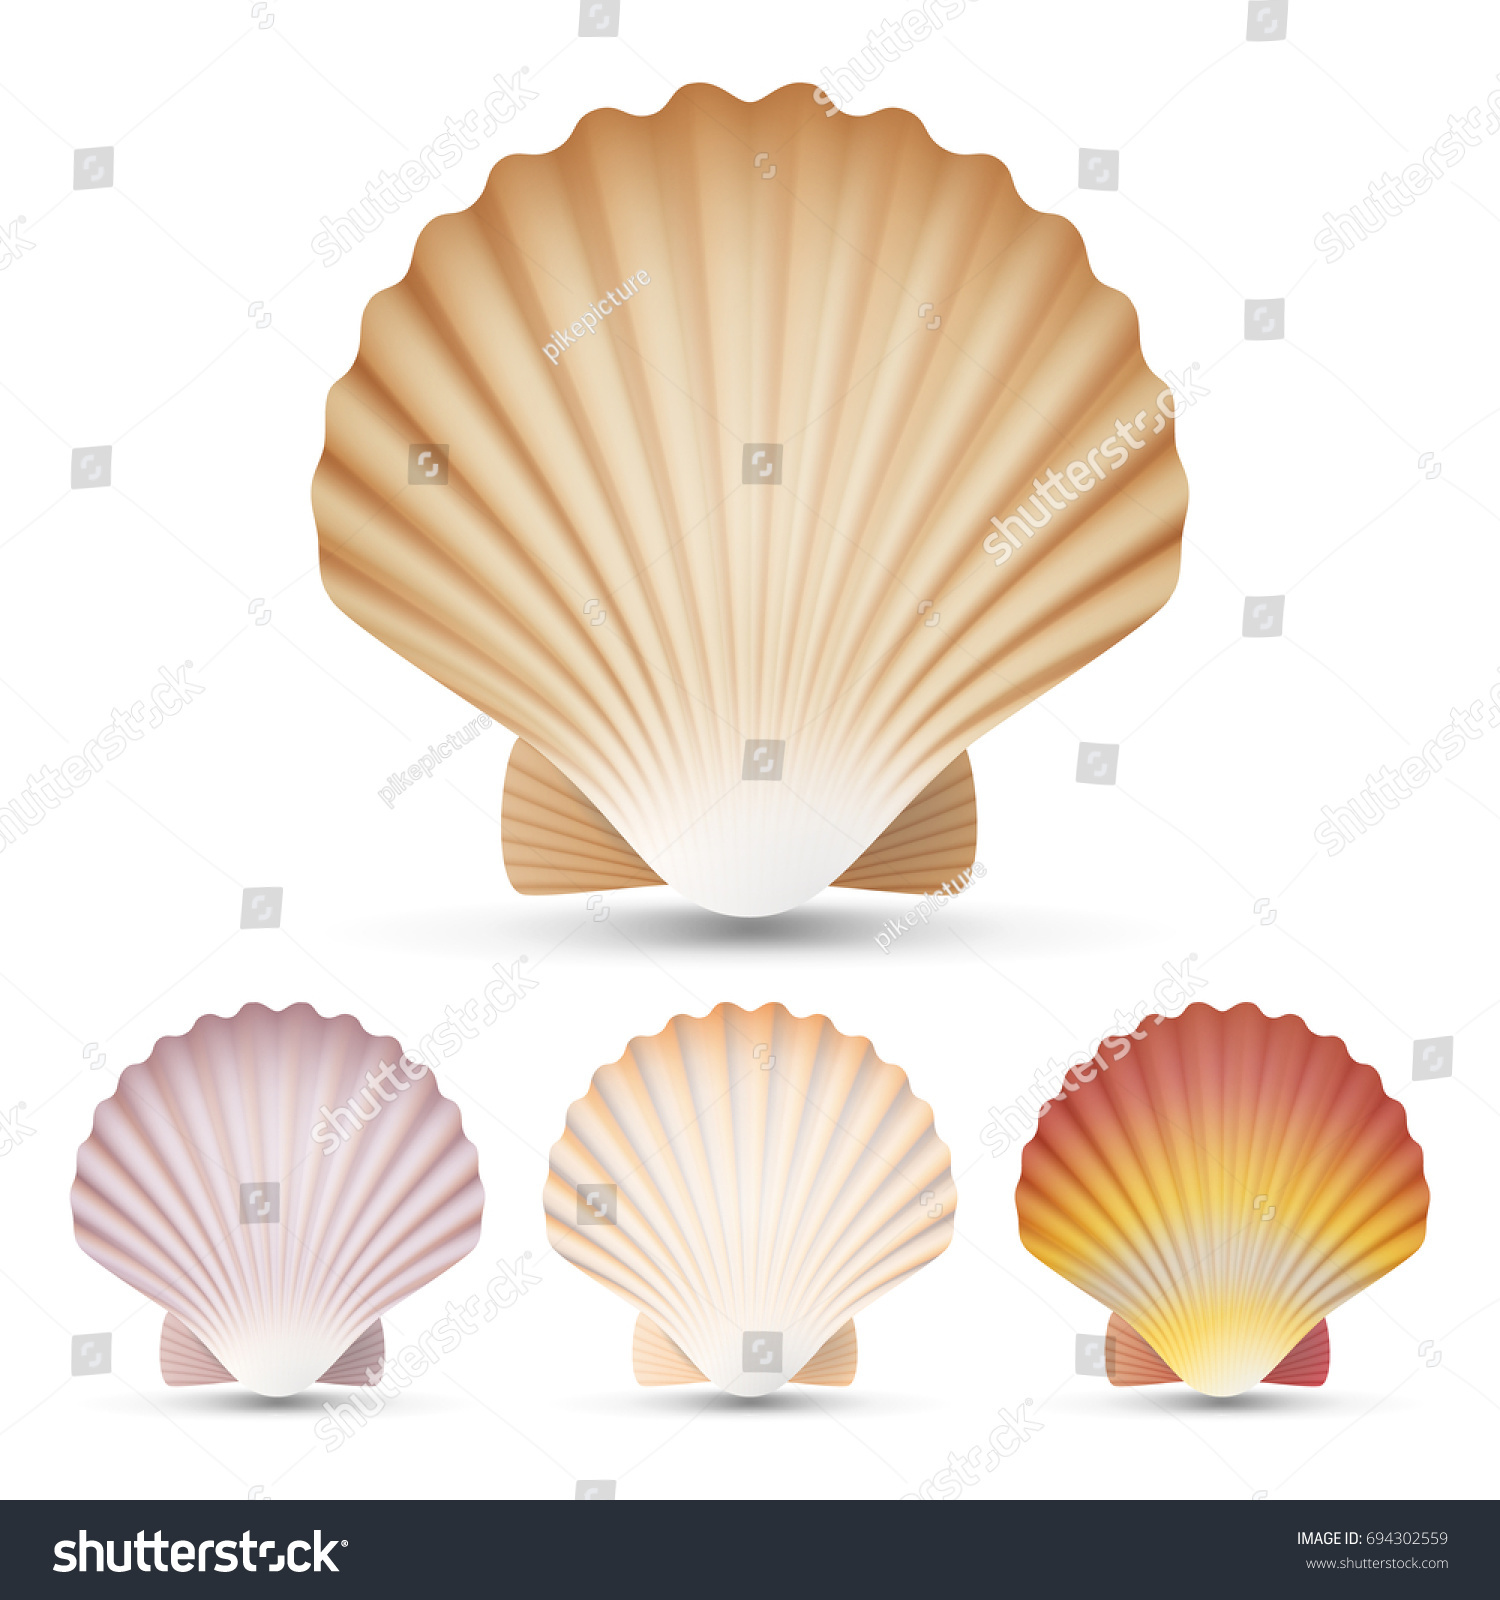 Scallop seashell set vector exotic souvenir stock vector 694302559 scallop seashell set vector exotic souvenir scallops shell isolated on white background illustration biocorpaavc Image collections